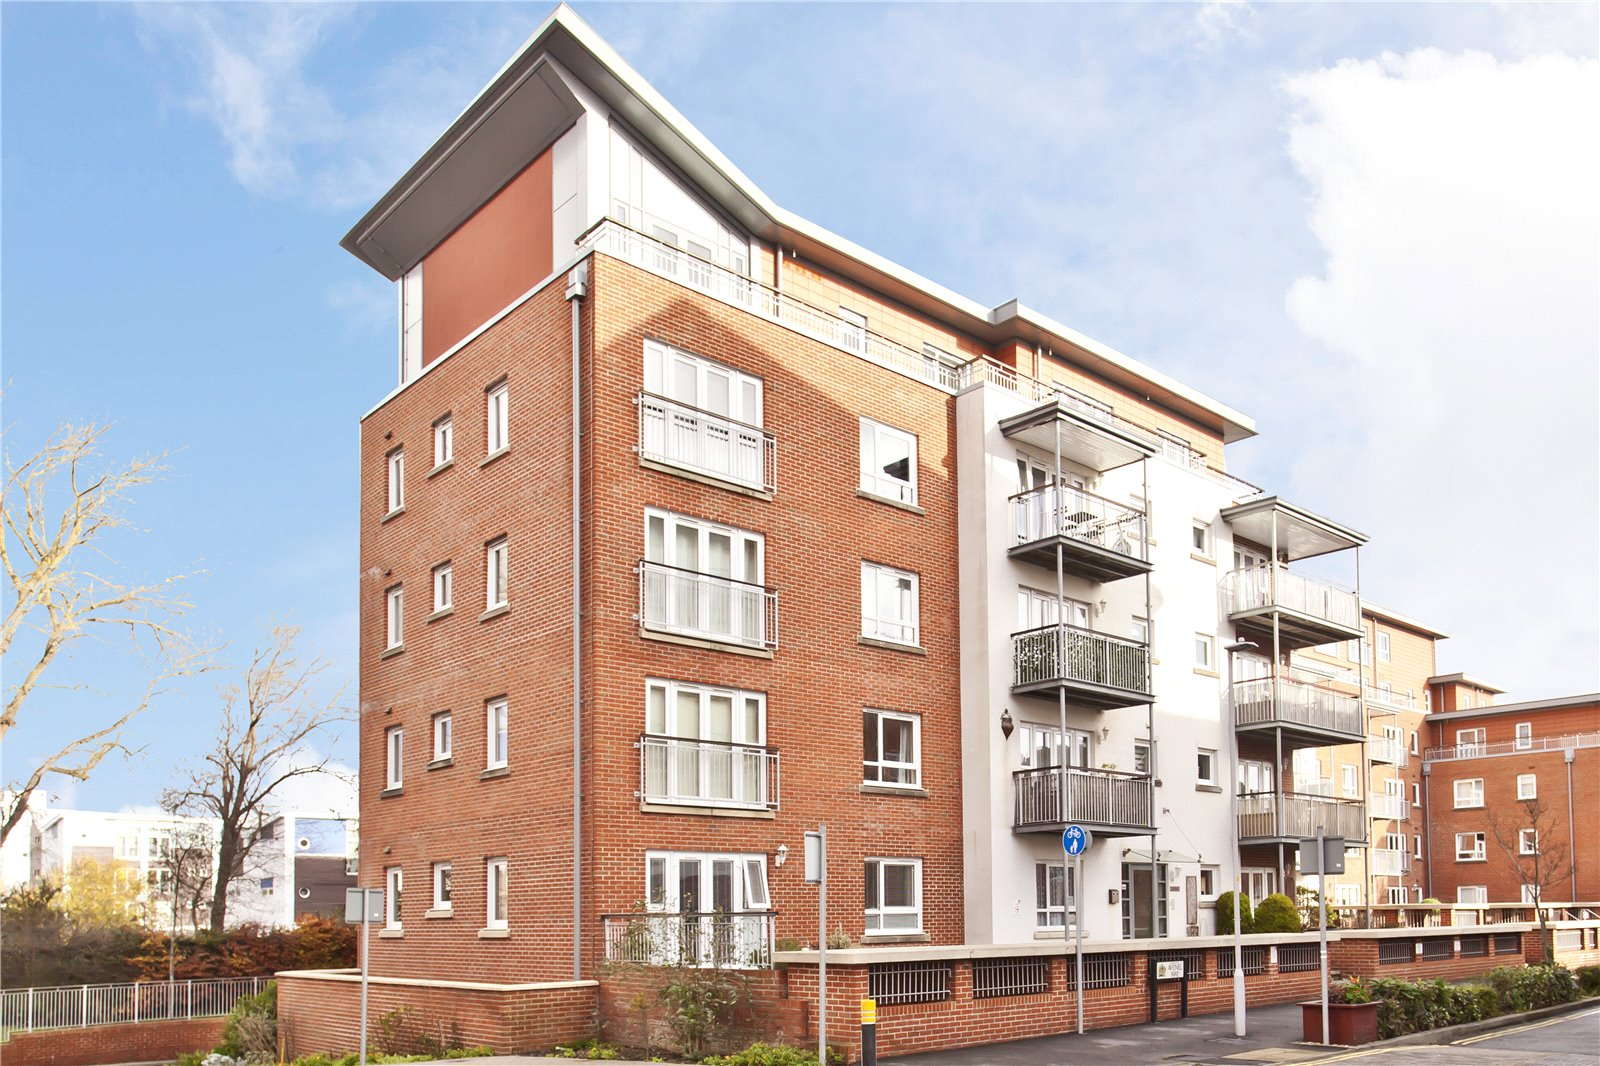 2 bed apartment for sale in Avenel Way, Poole - Property Image 1